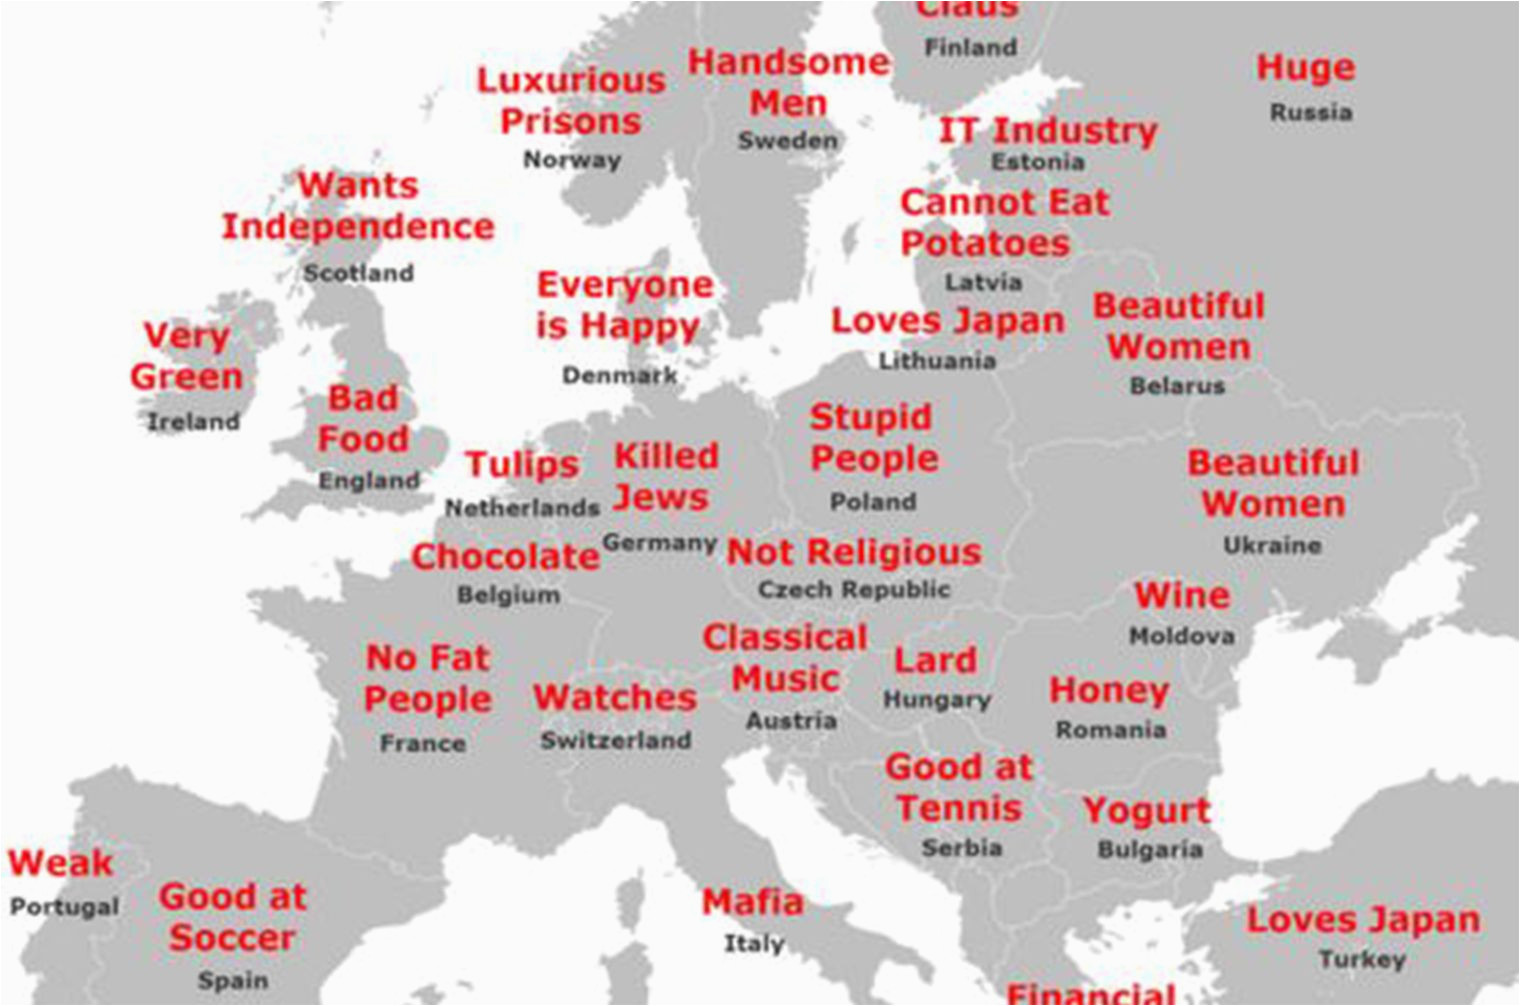 Map Of Europe Latvia the Japanese Stereotype Map Of Europe How It All Stacks Up